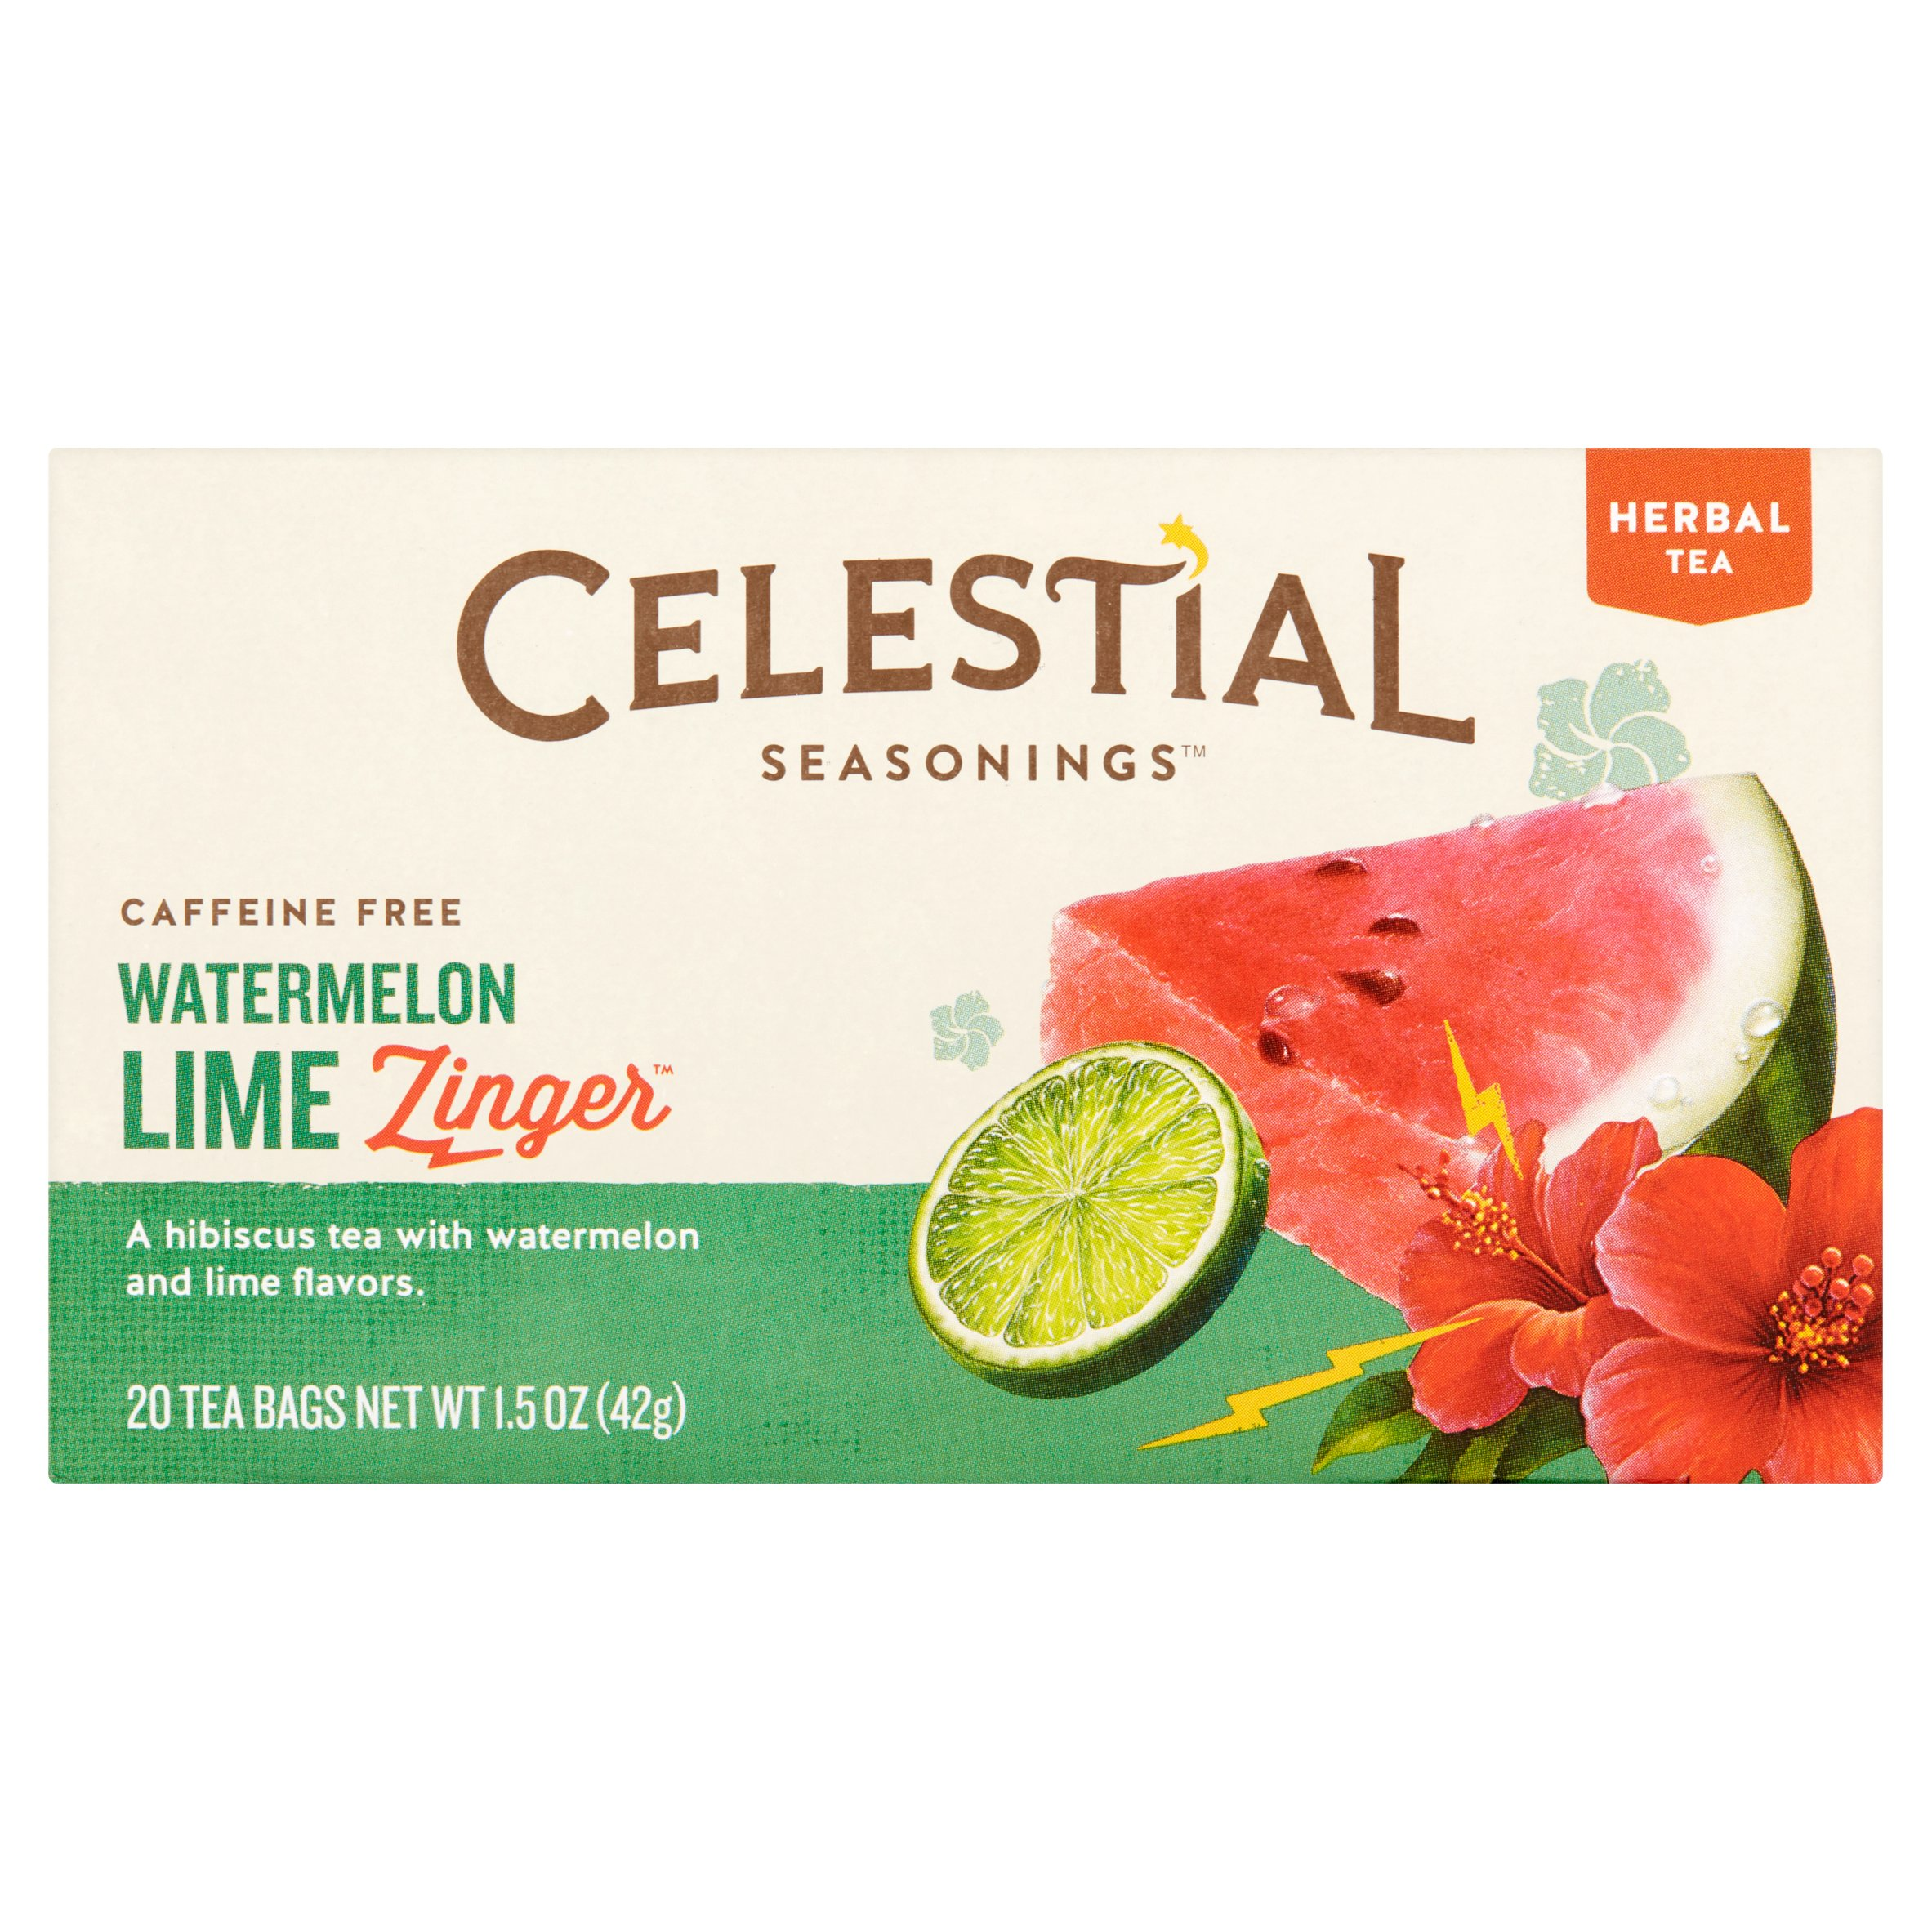 Celestial Seasonings Zinger Watermelon Lime Herbal Tea Bags, 20 count, 1.5 oz, 6 pack